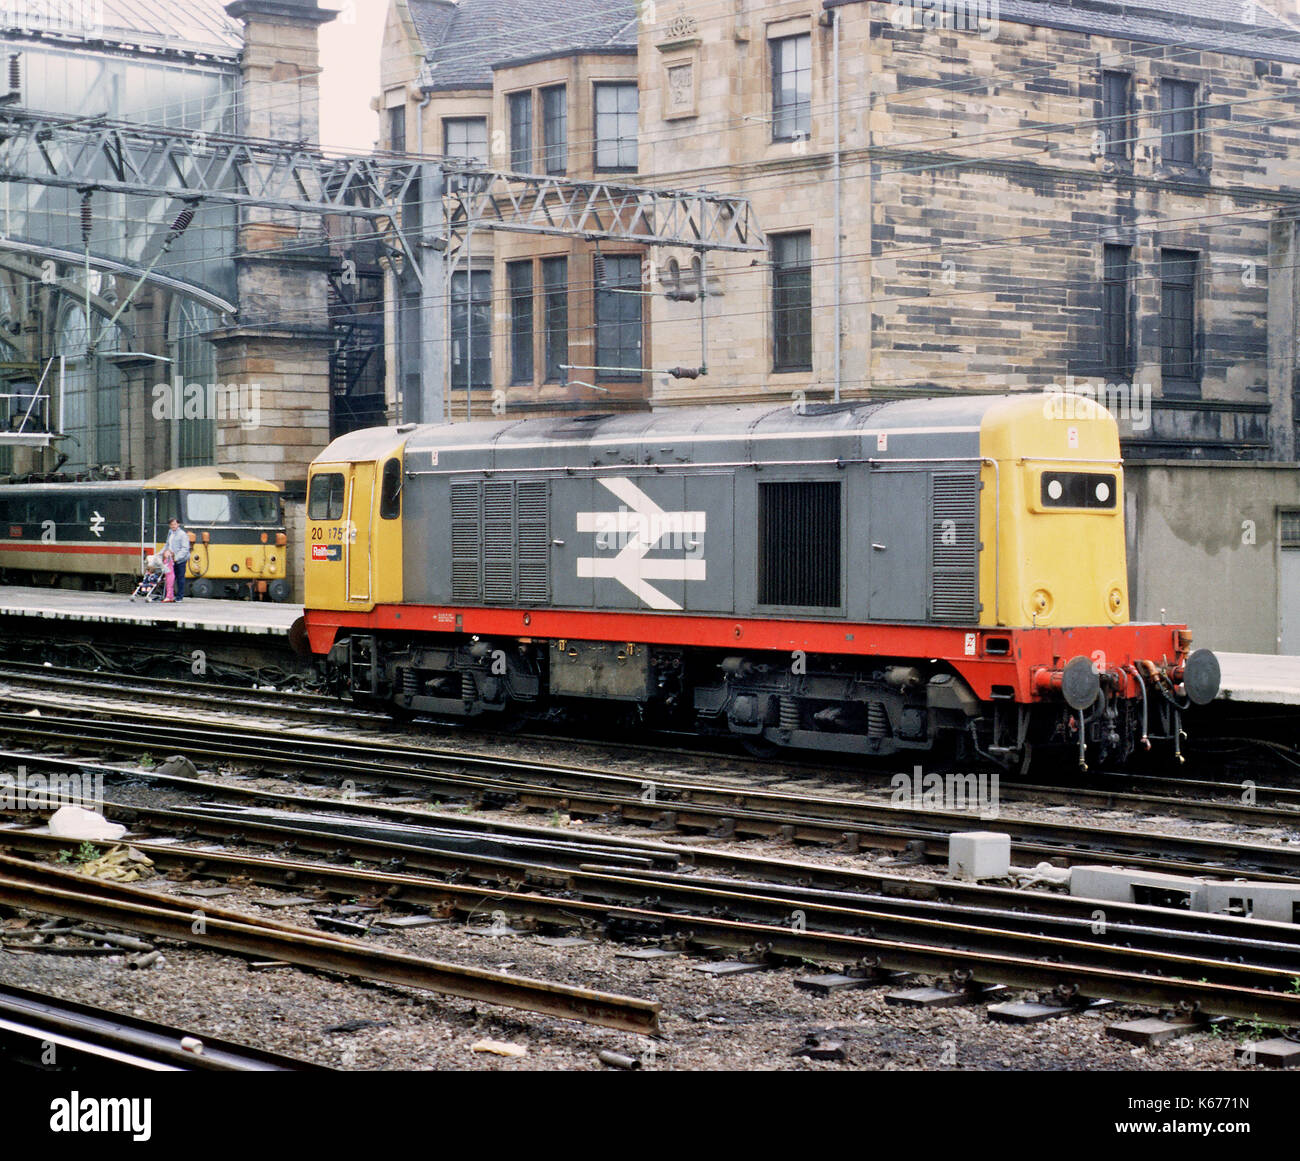 Class 20 locomotive at Glasgow Central railway station - Stock Image